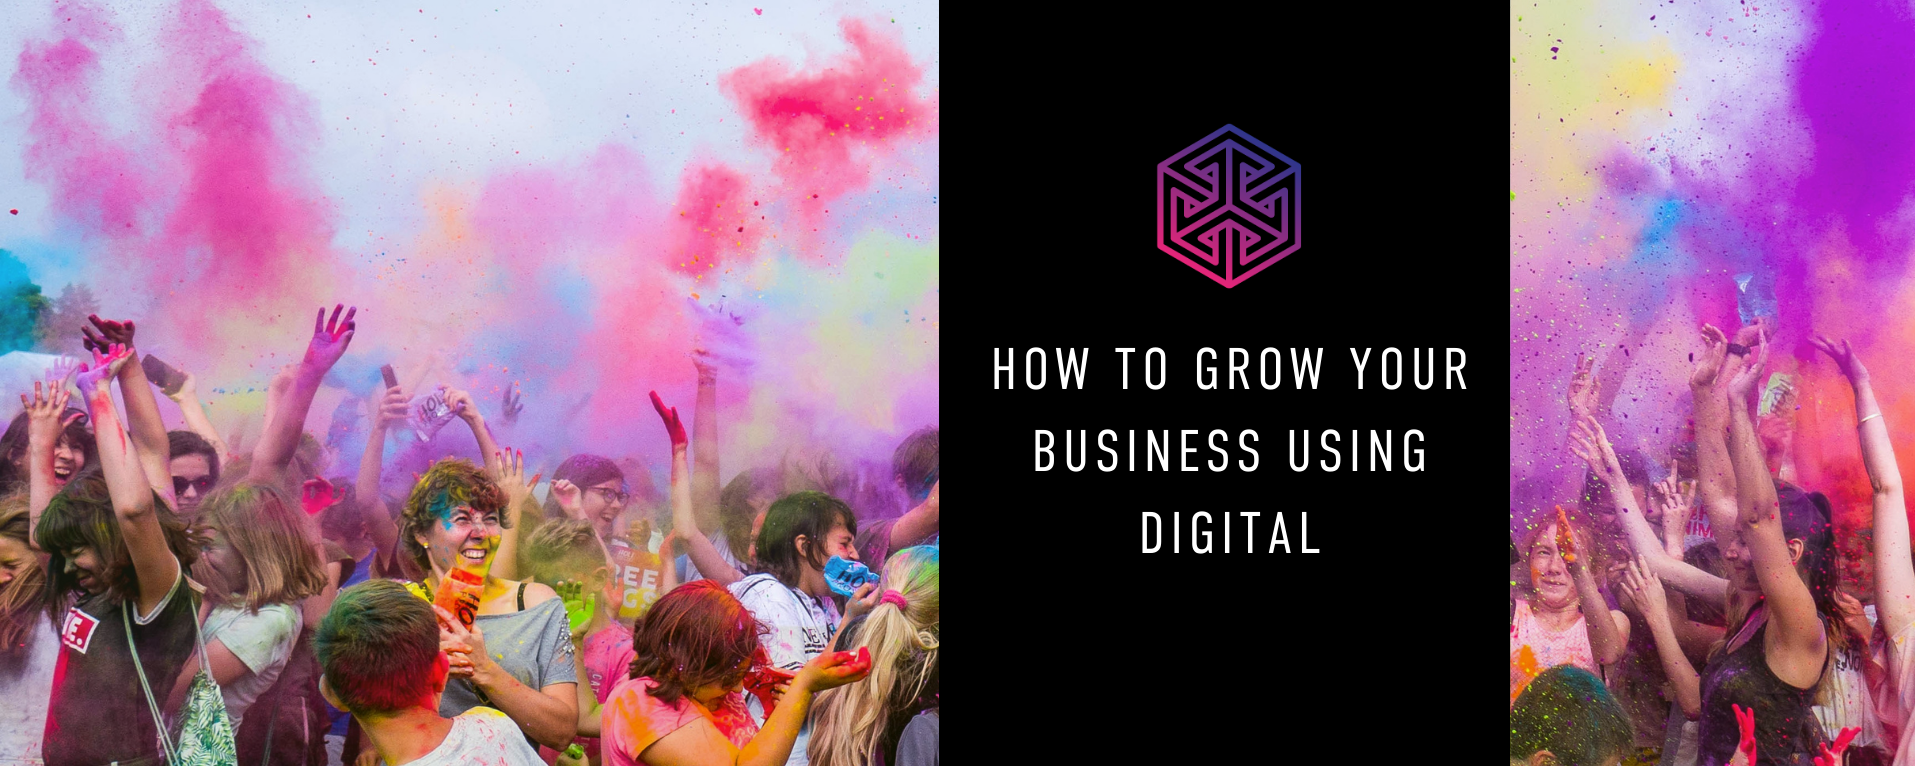 How To Grow Your Business Using Digital. Tribe of Brands Blog.